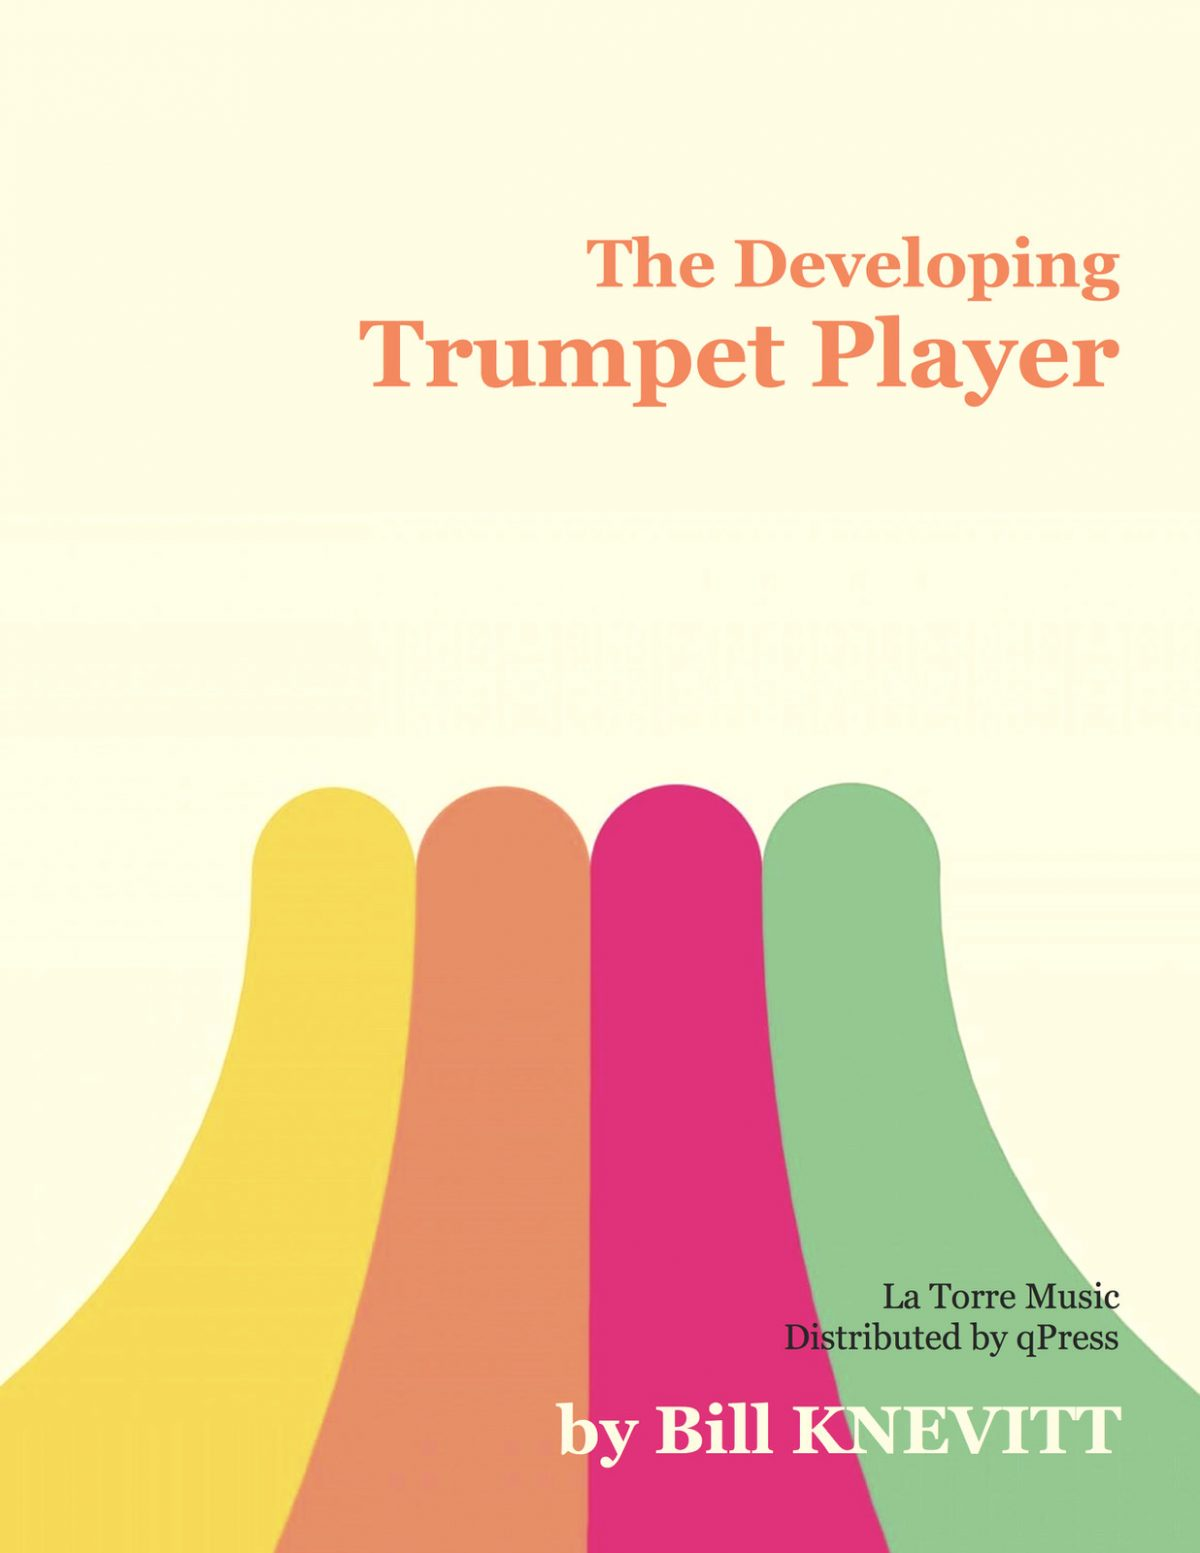 knevitt-developing-trumpet-player